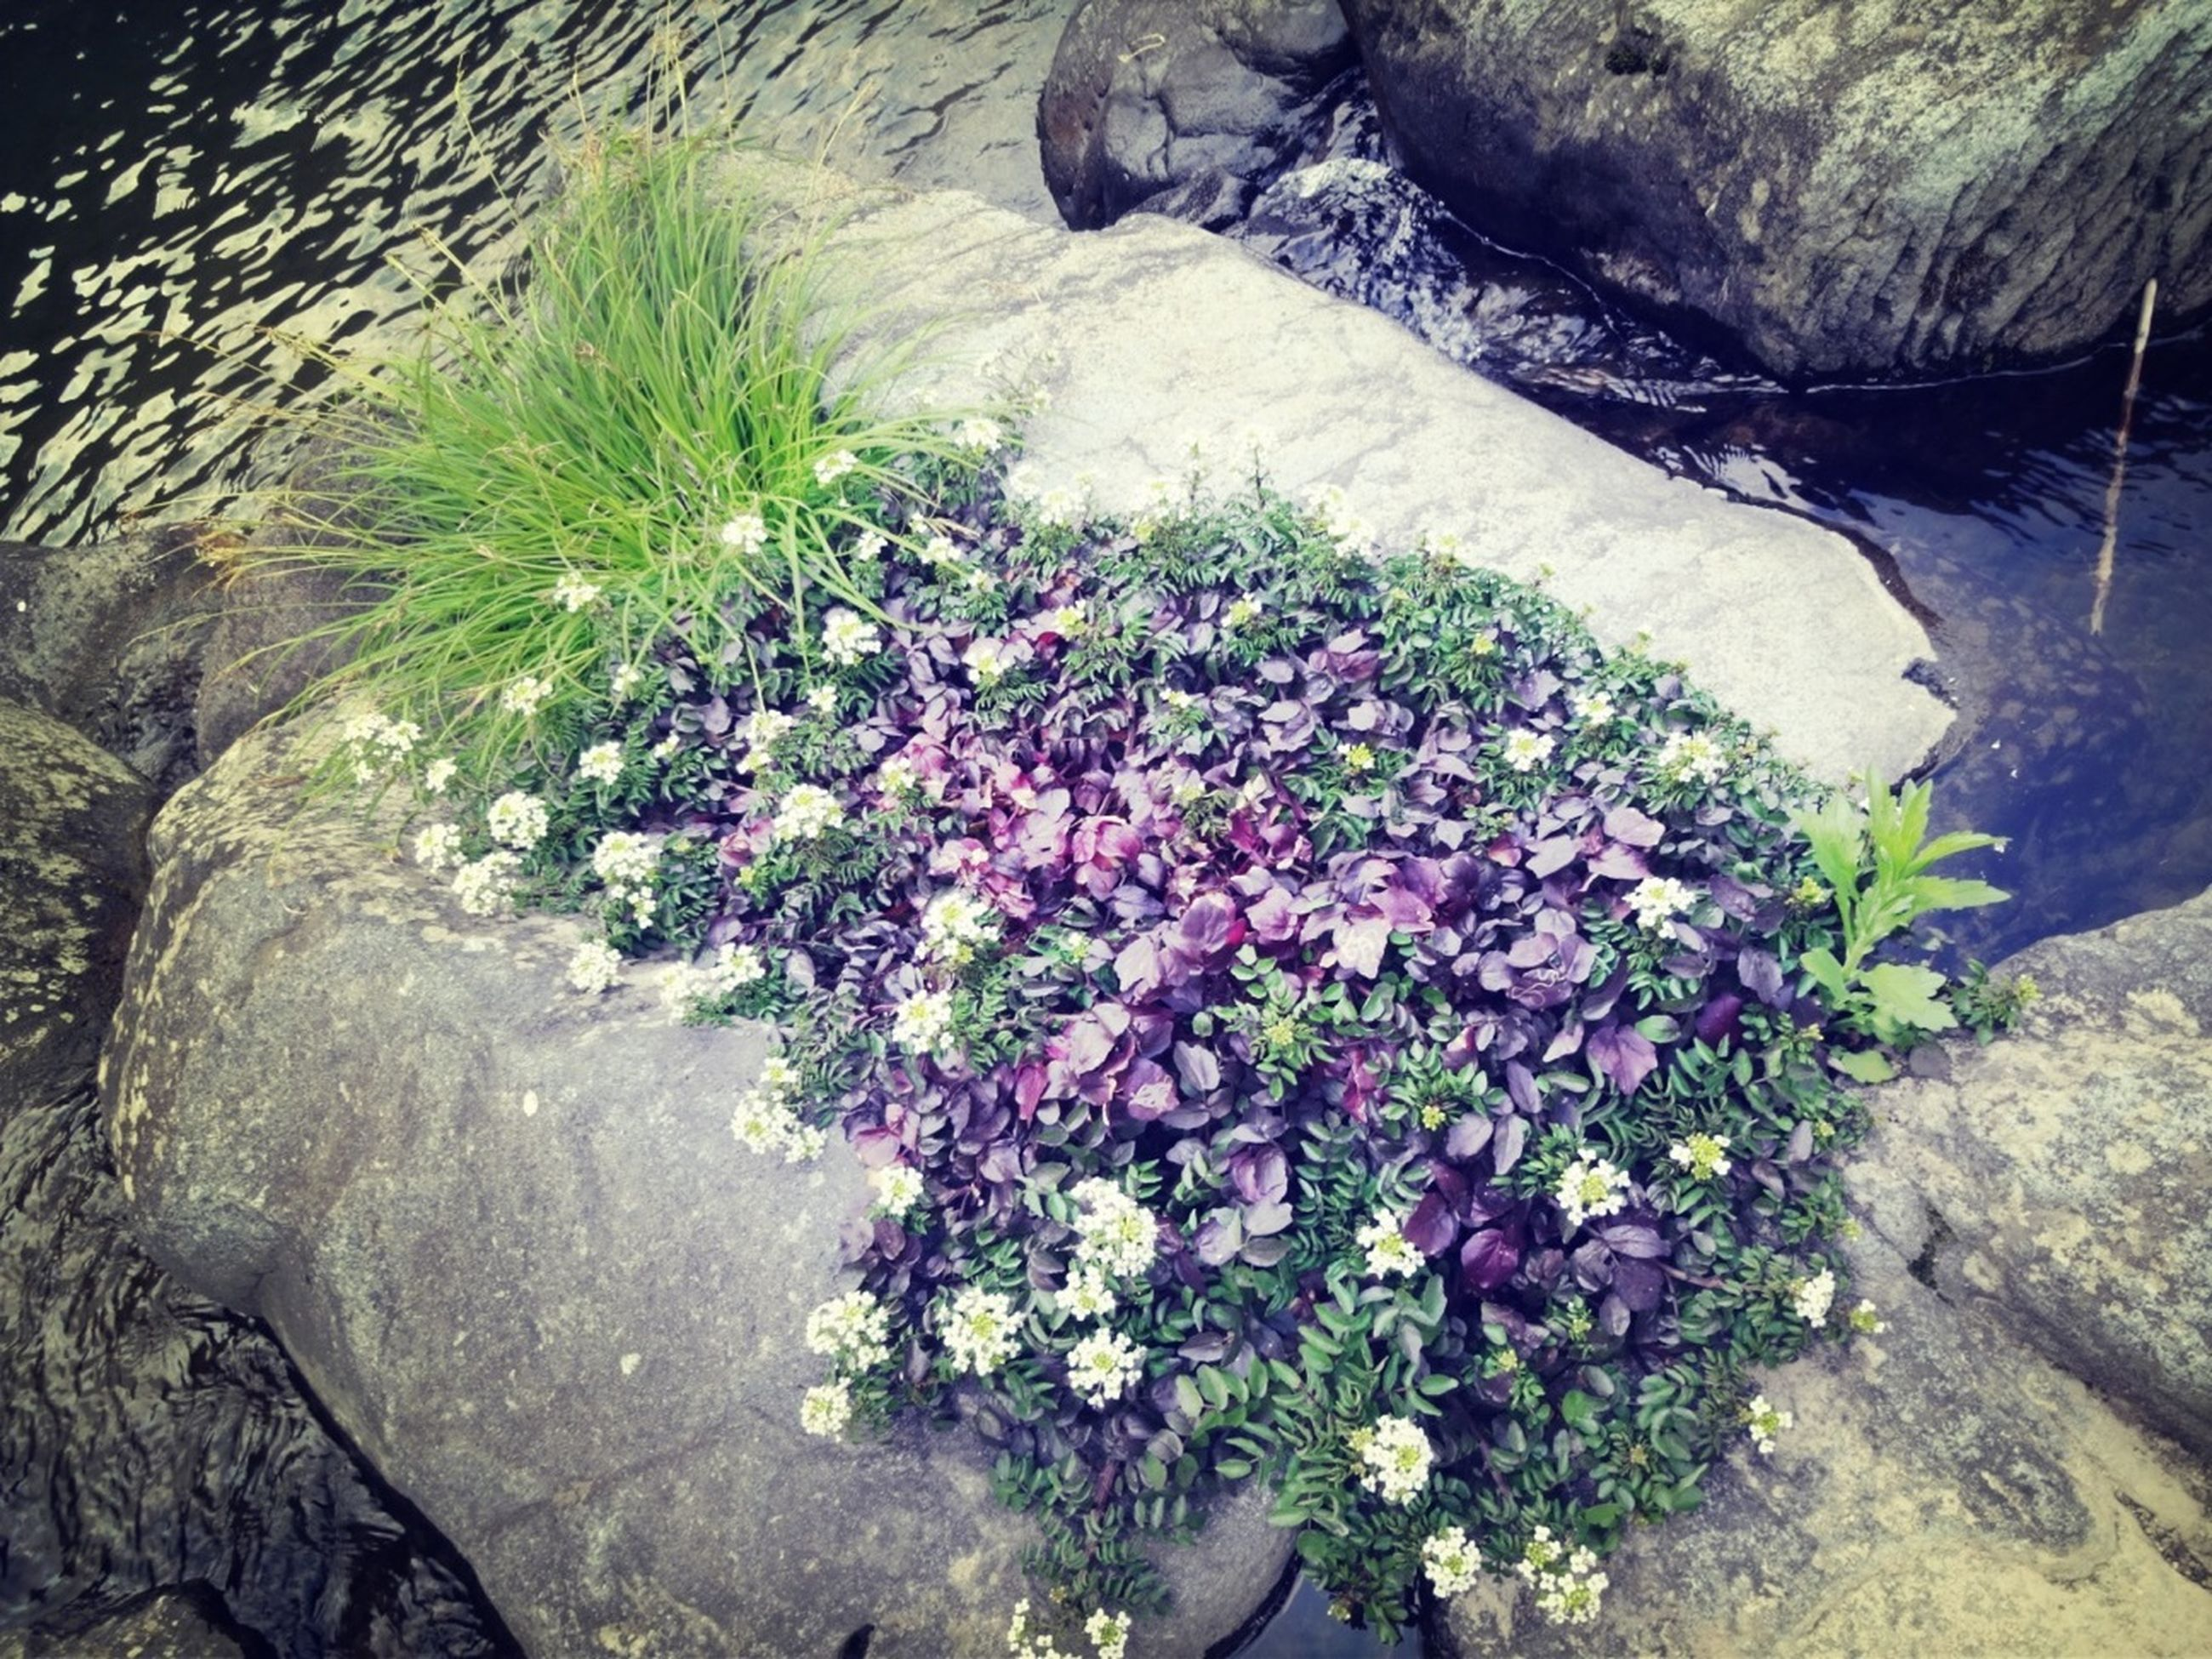 flower, growth, plant, freshness, beauty in nature, nature, high angle view, rock - object, fragility, blooming, petal, tranquility, growing, day, sunlight, outdoors, in bloom, no people, tranquil scene, stone - object